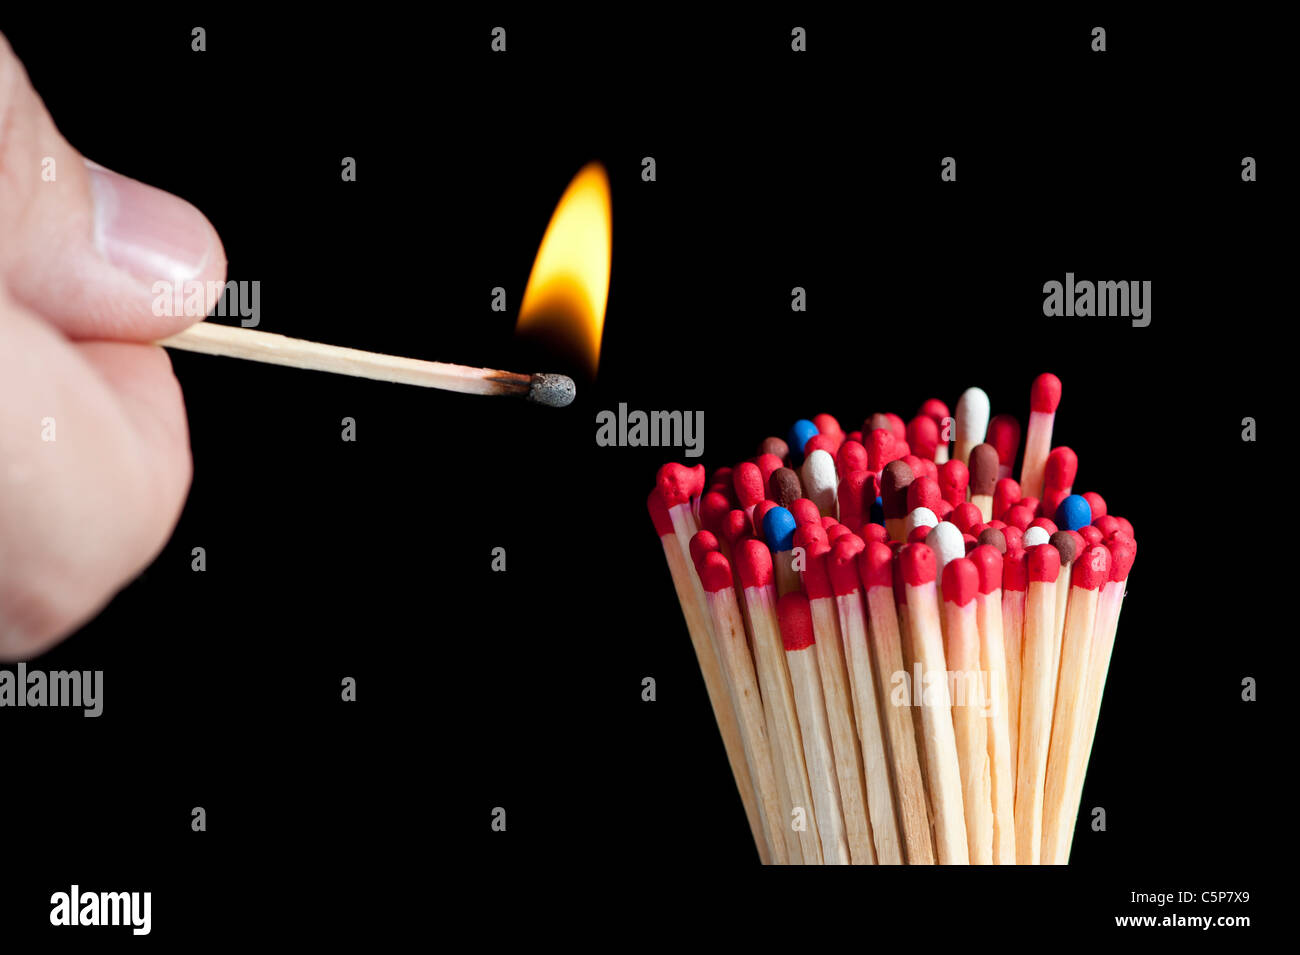 ignition of group multicolored matches, isolated on black background - Stock Image